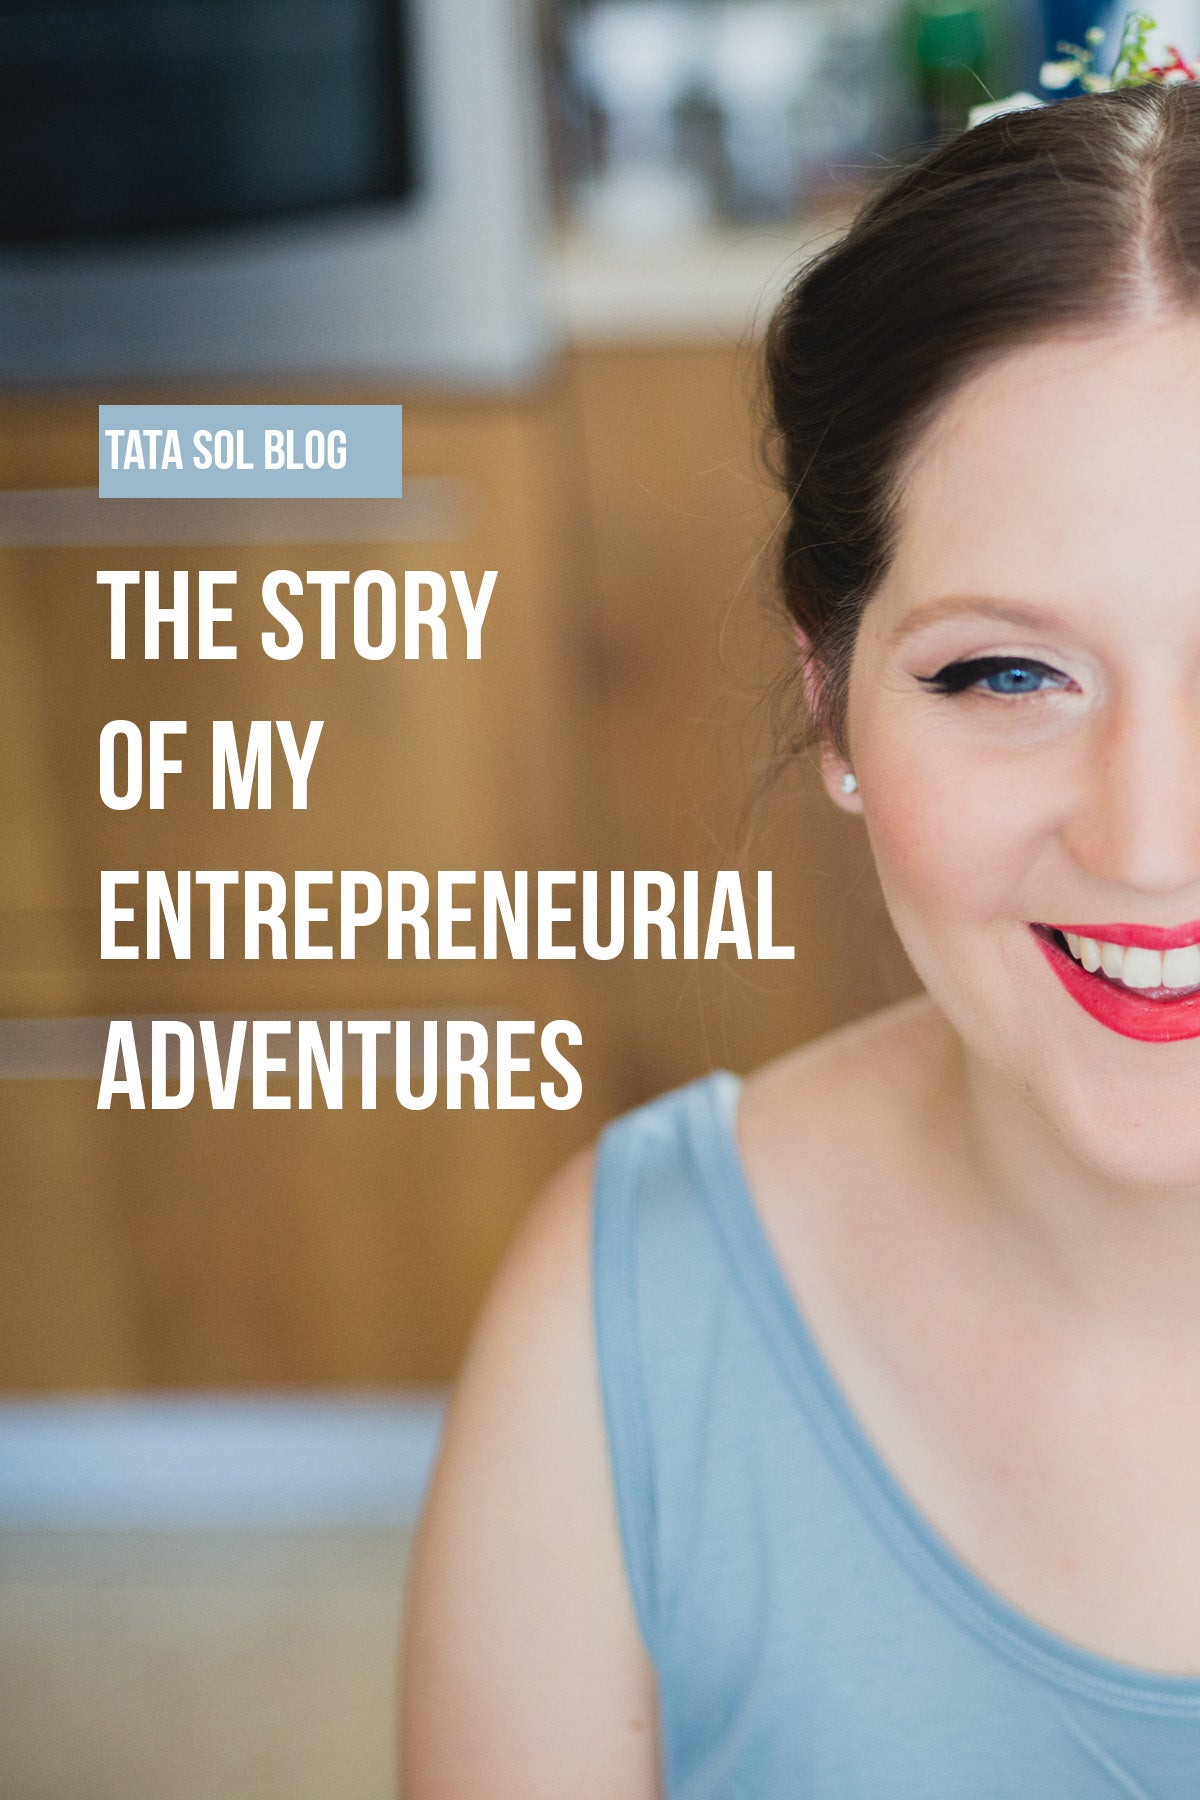 The Story of My Entrepreneurial Adventures